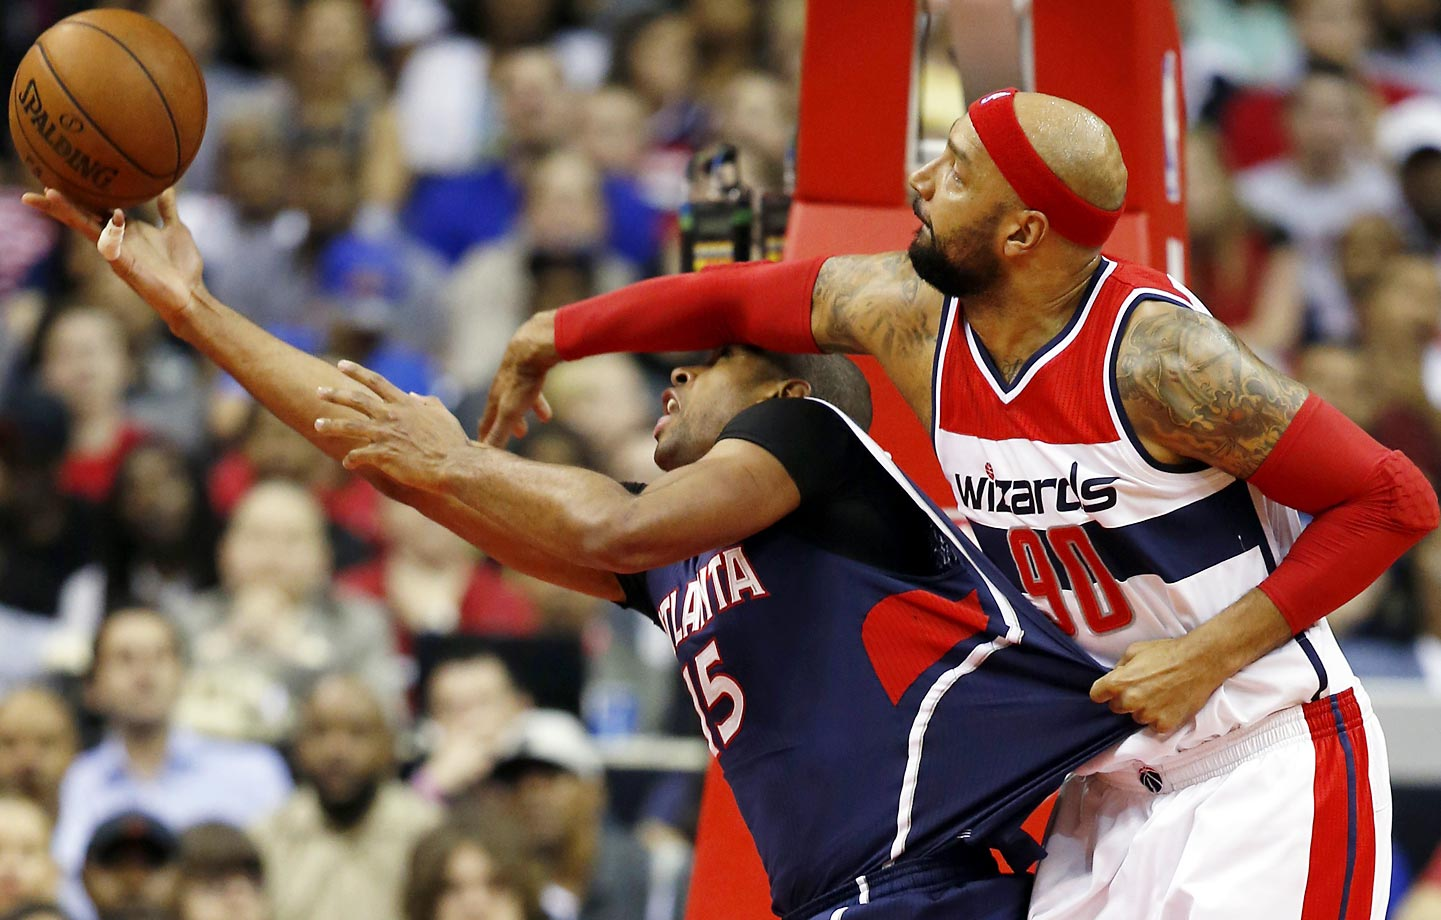 Wizards' Drew Gooden and Hawks' Al Horford.